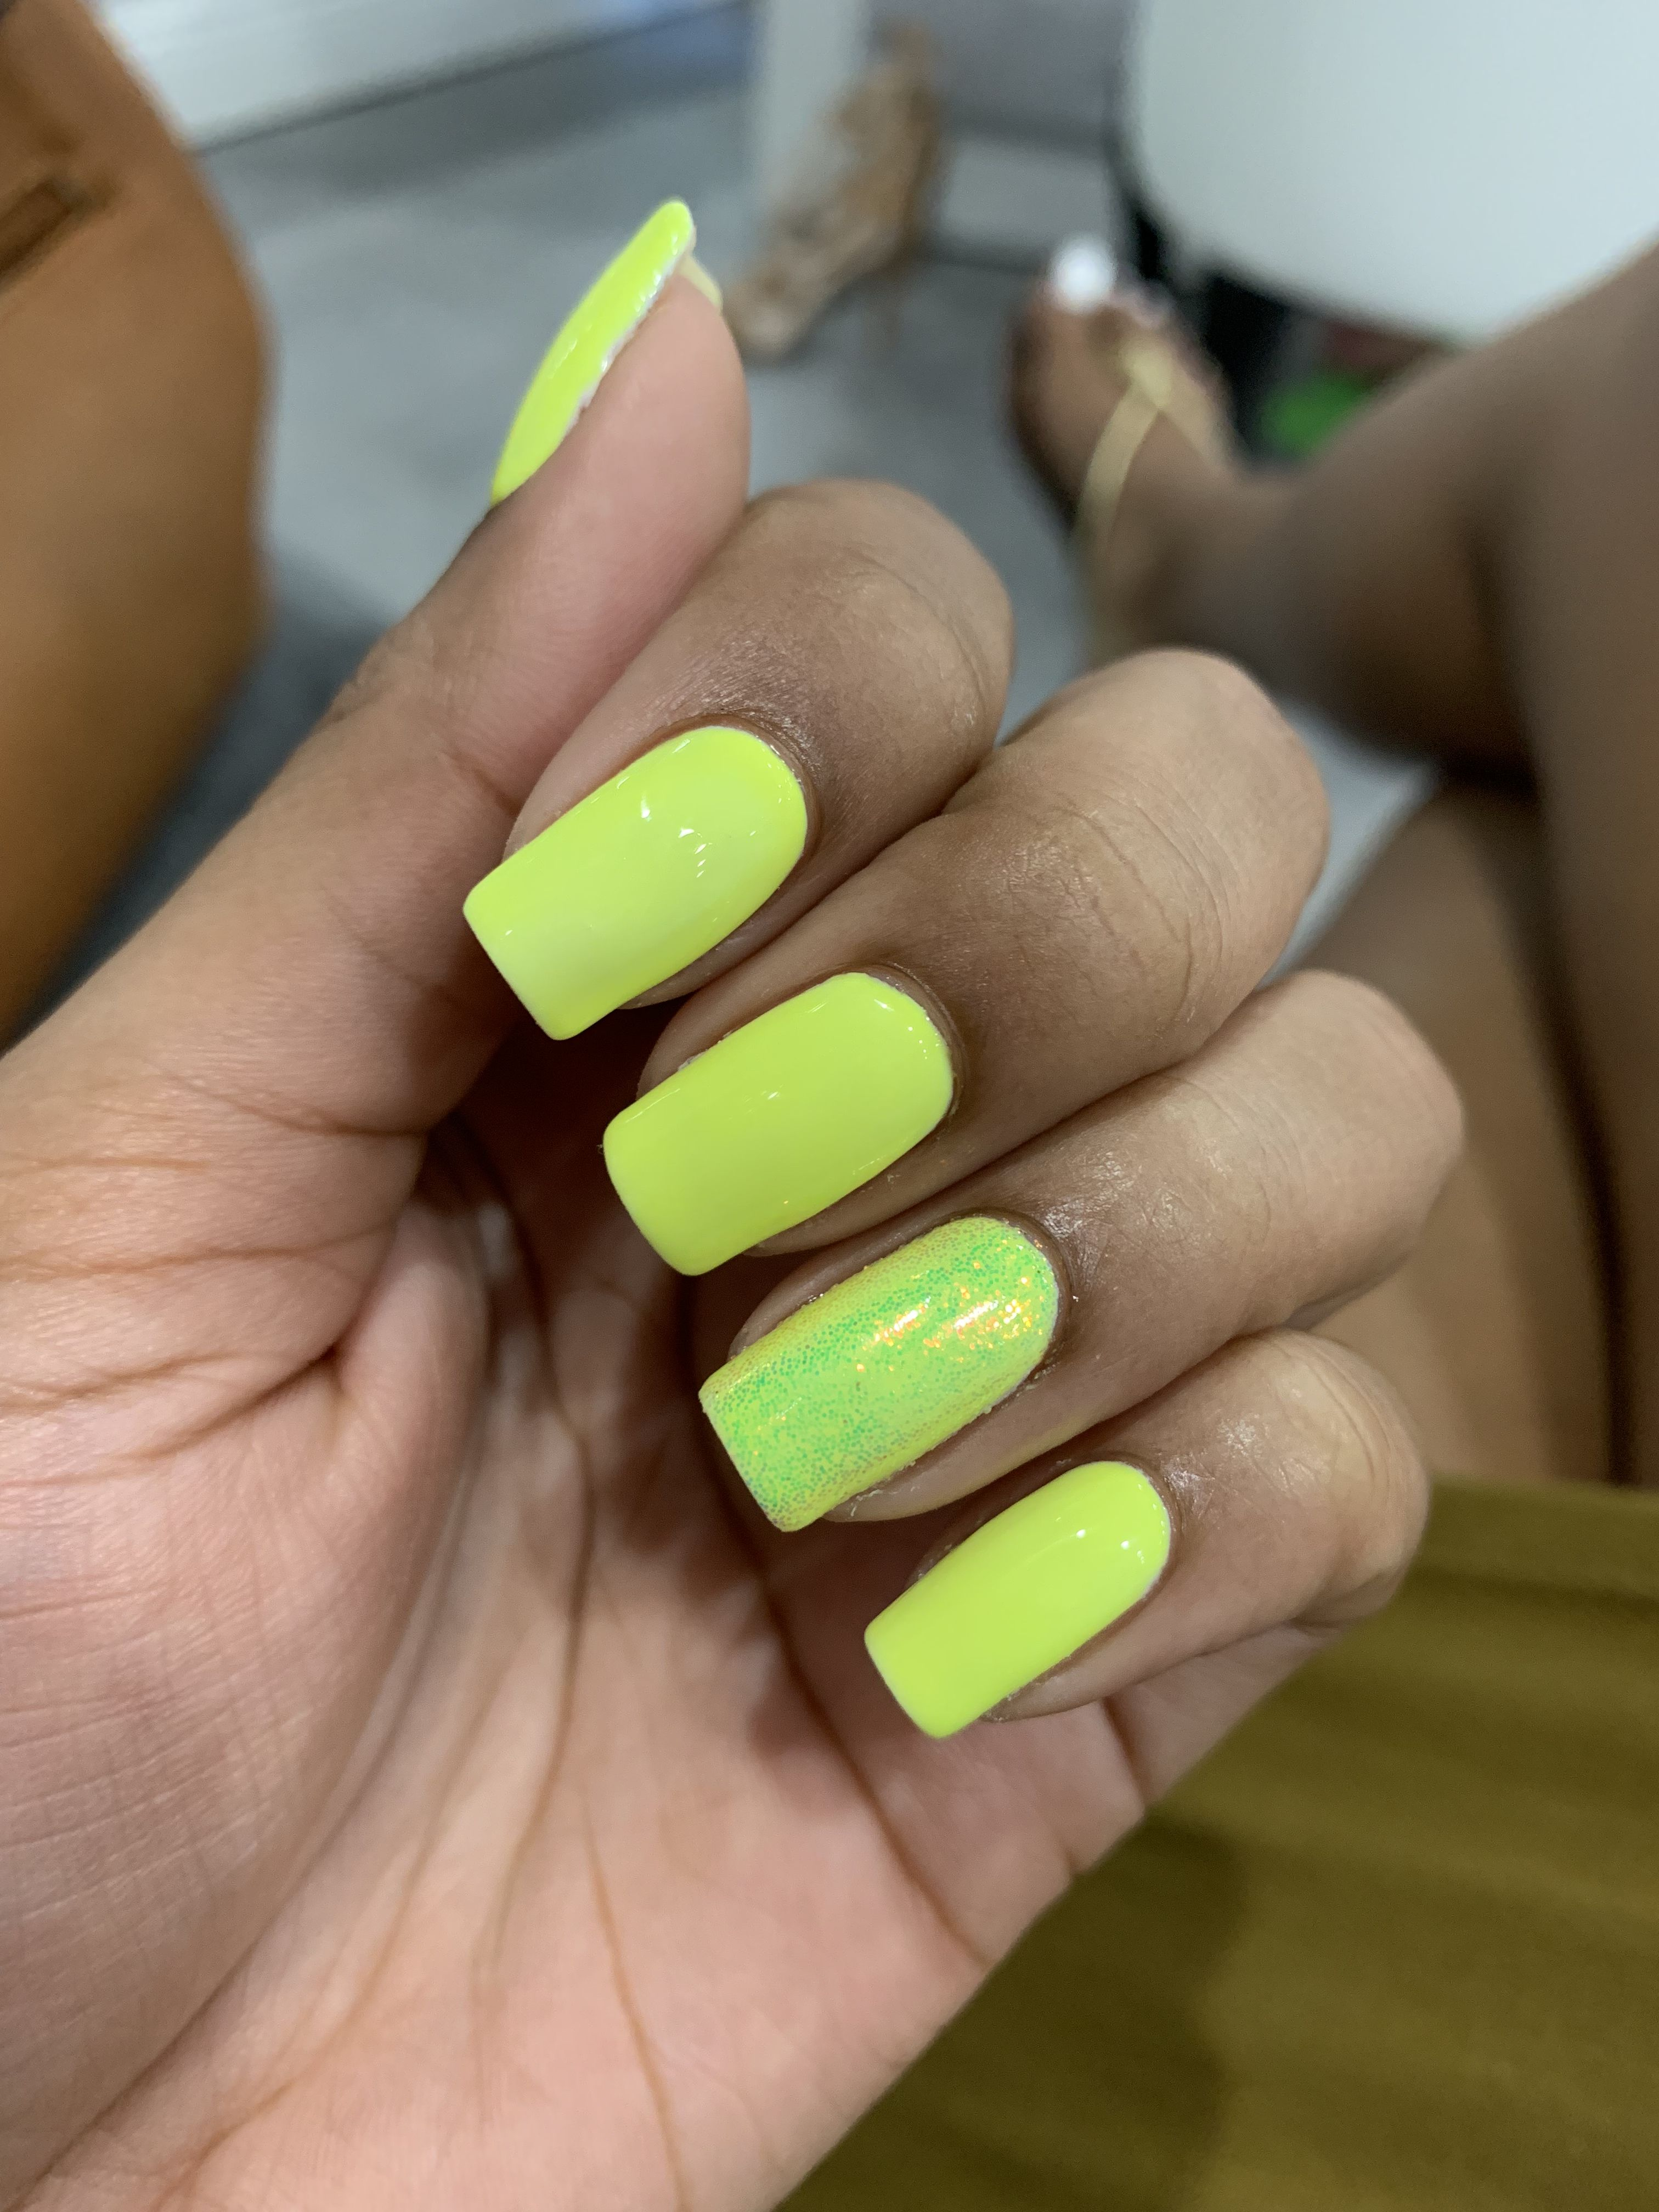 Neon Yellow Gel Nail Polish With Unicorn Glitter Accents On